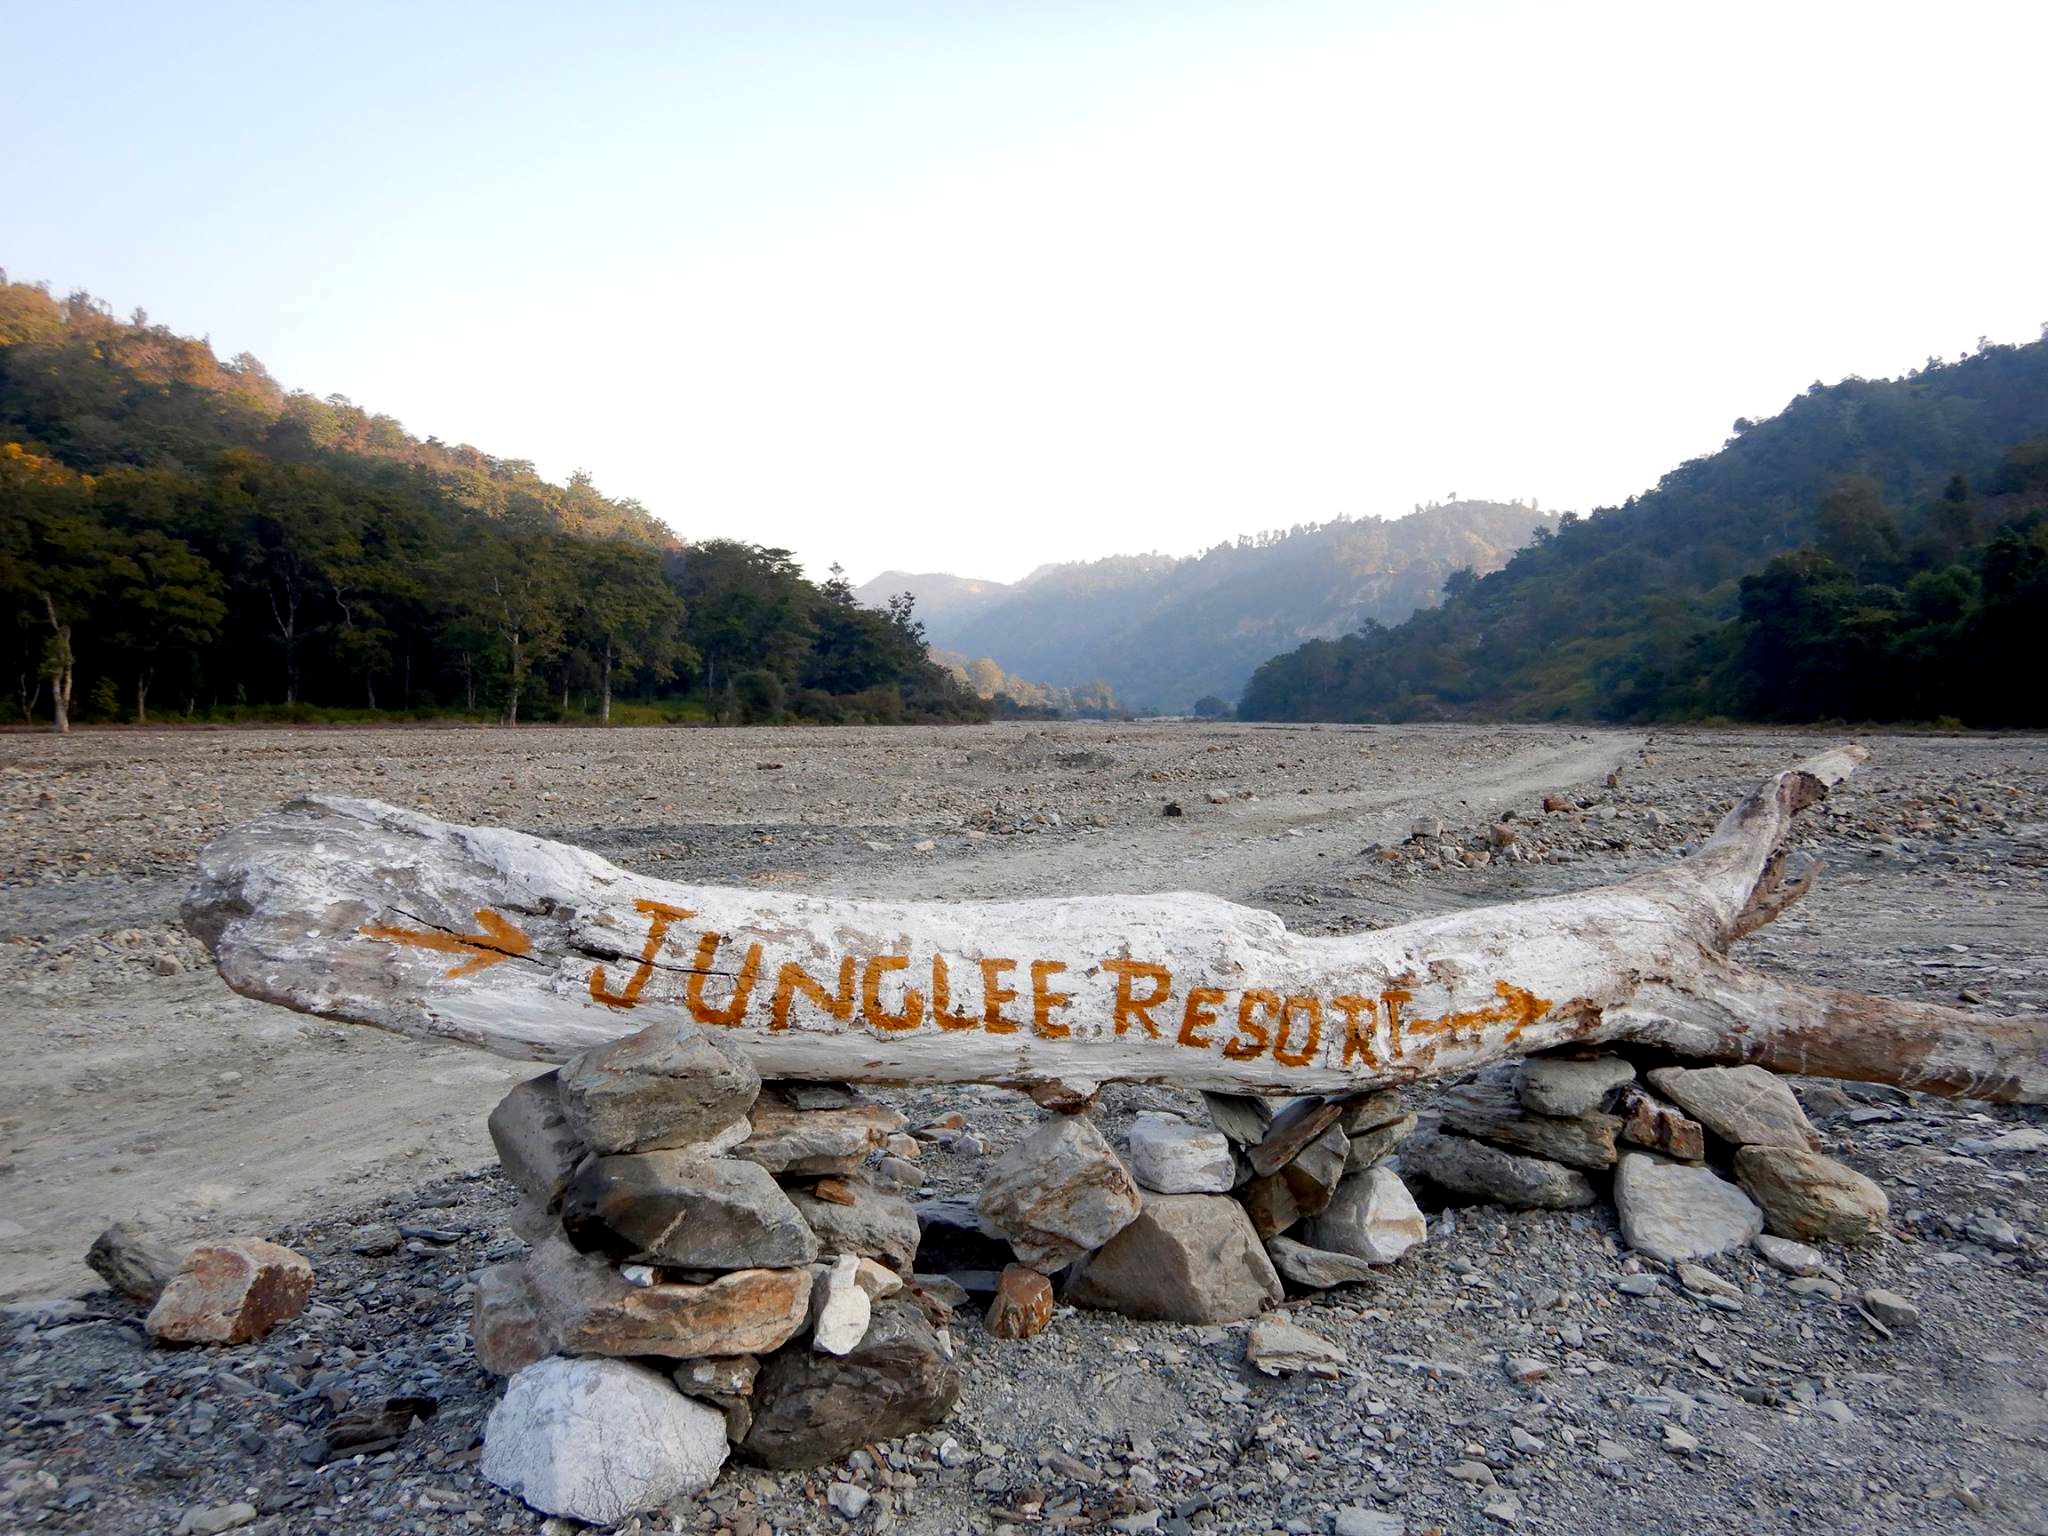 Junglee Resort, India – A Hotel for the Adventurous